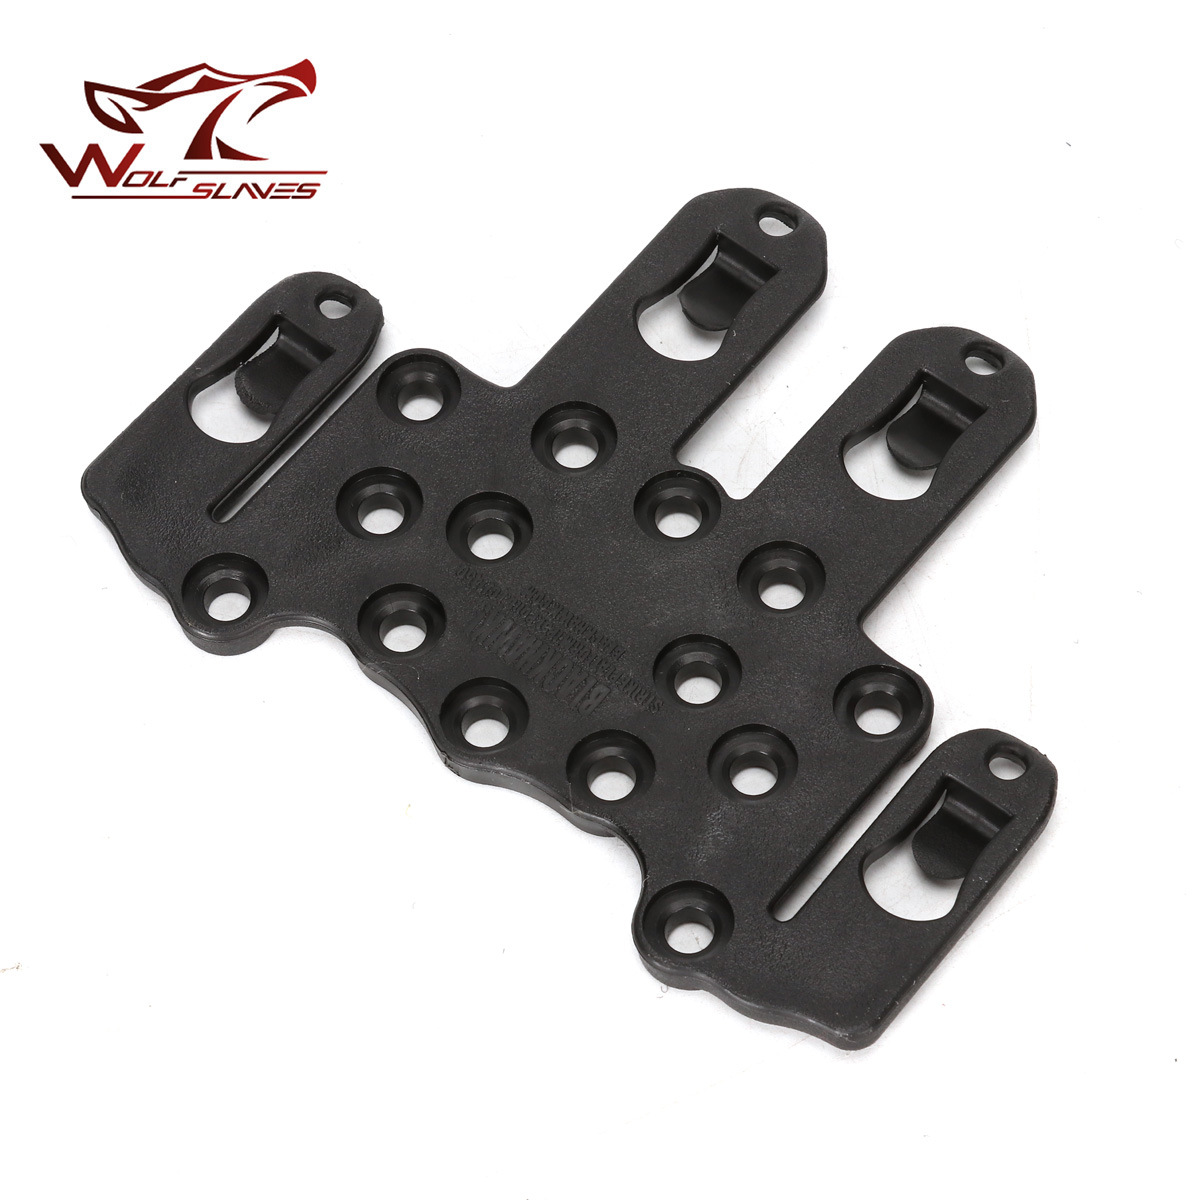 Tactical Molle Speed Clip Platform Ambidextrous Holster Rail Case Mount CQC Gun Holster Adapter Gun Accessories